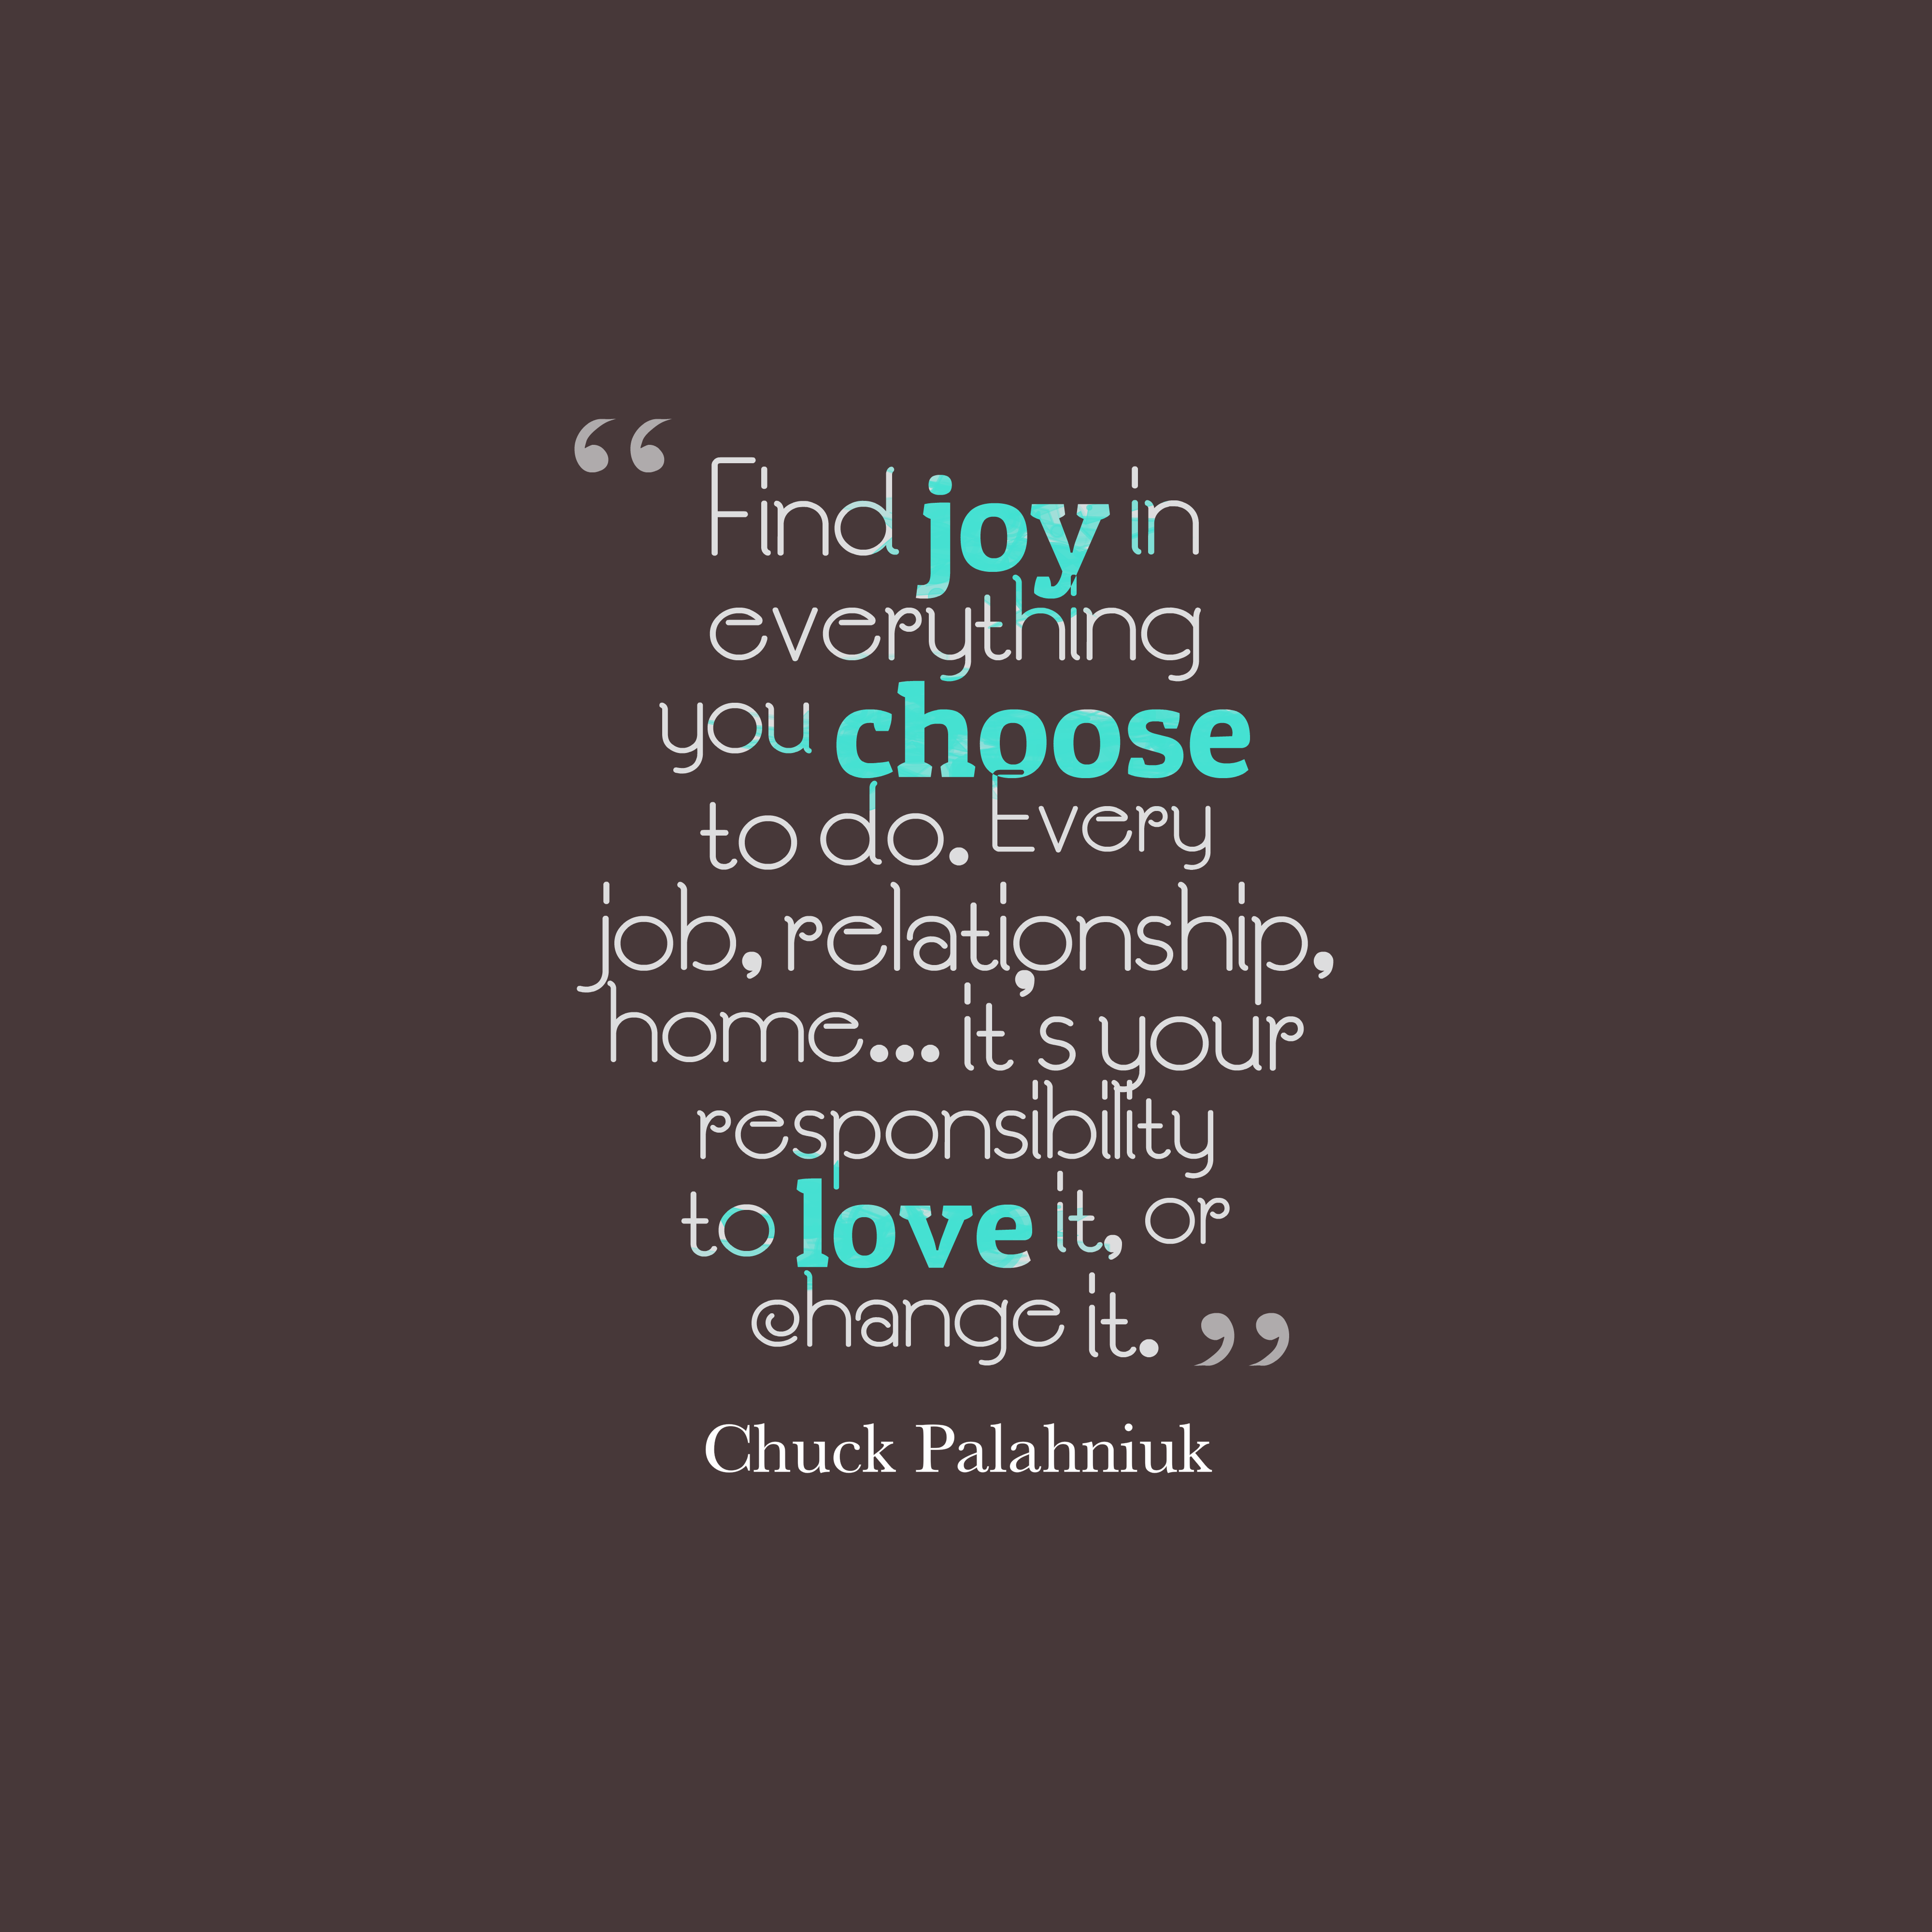 Chuck palahniuk quote about responsibility